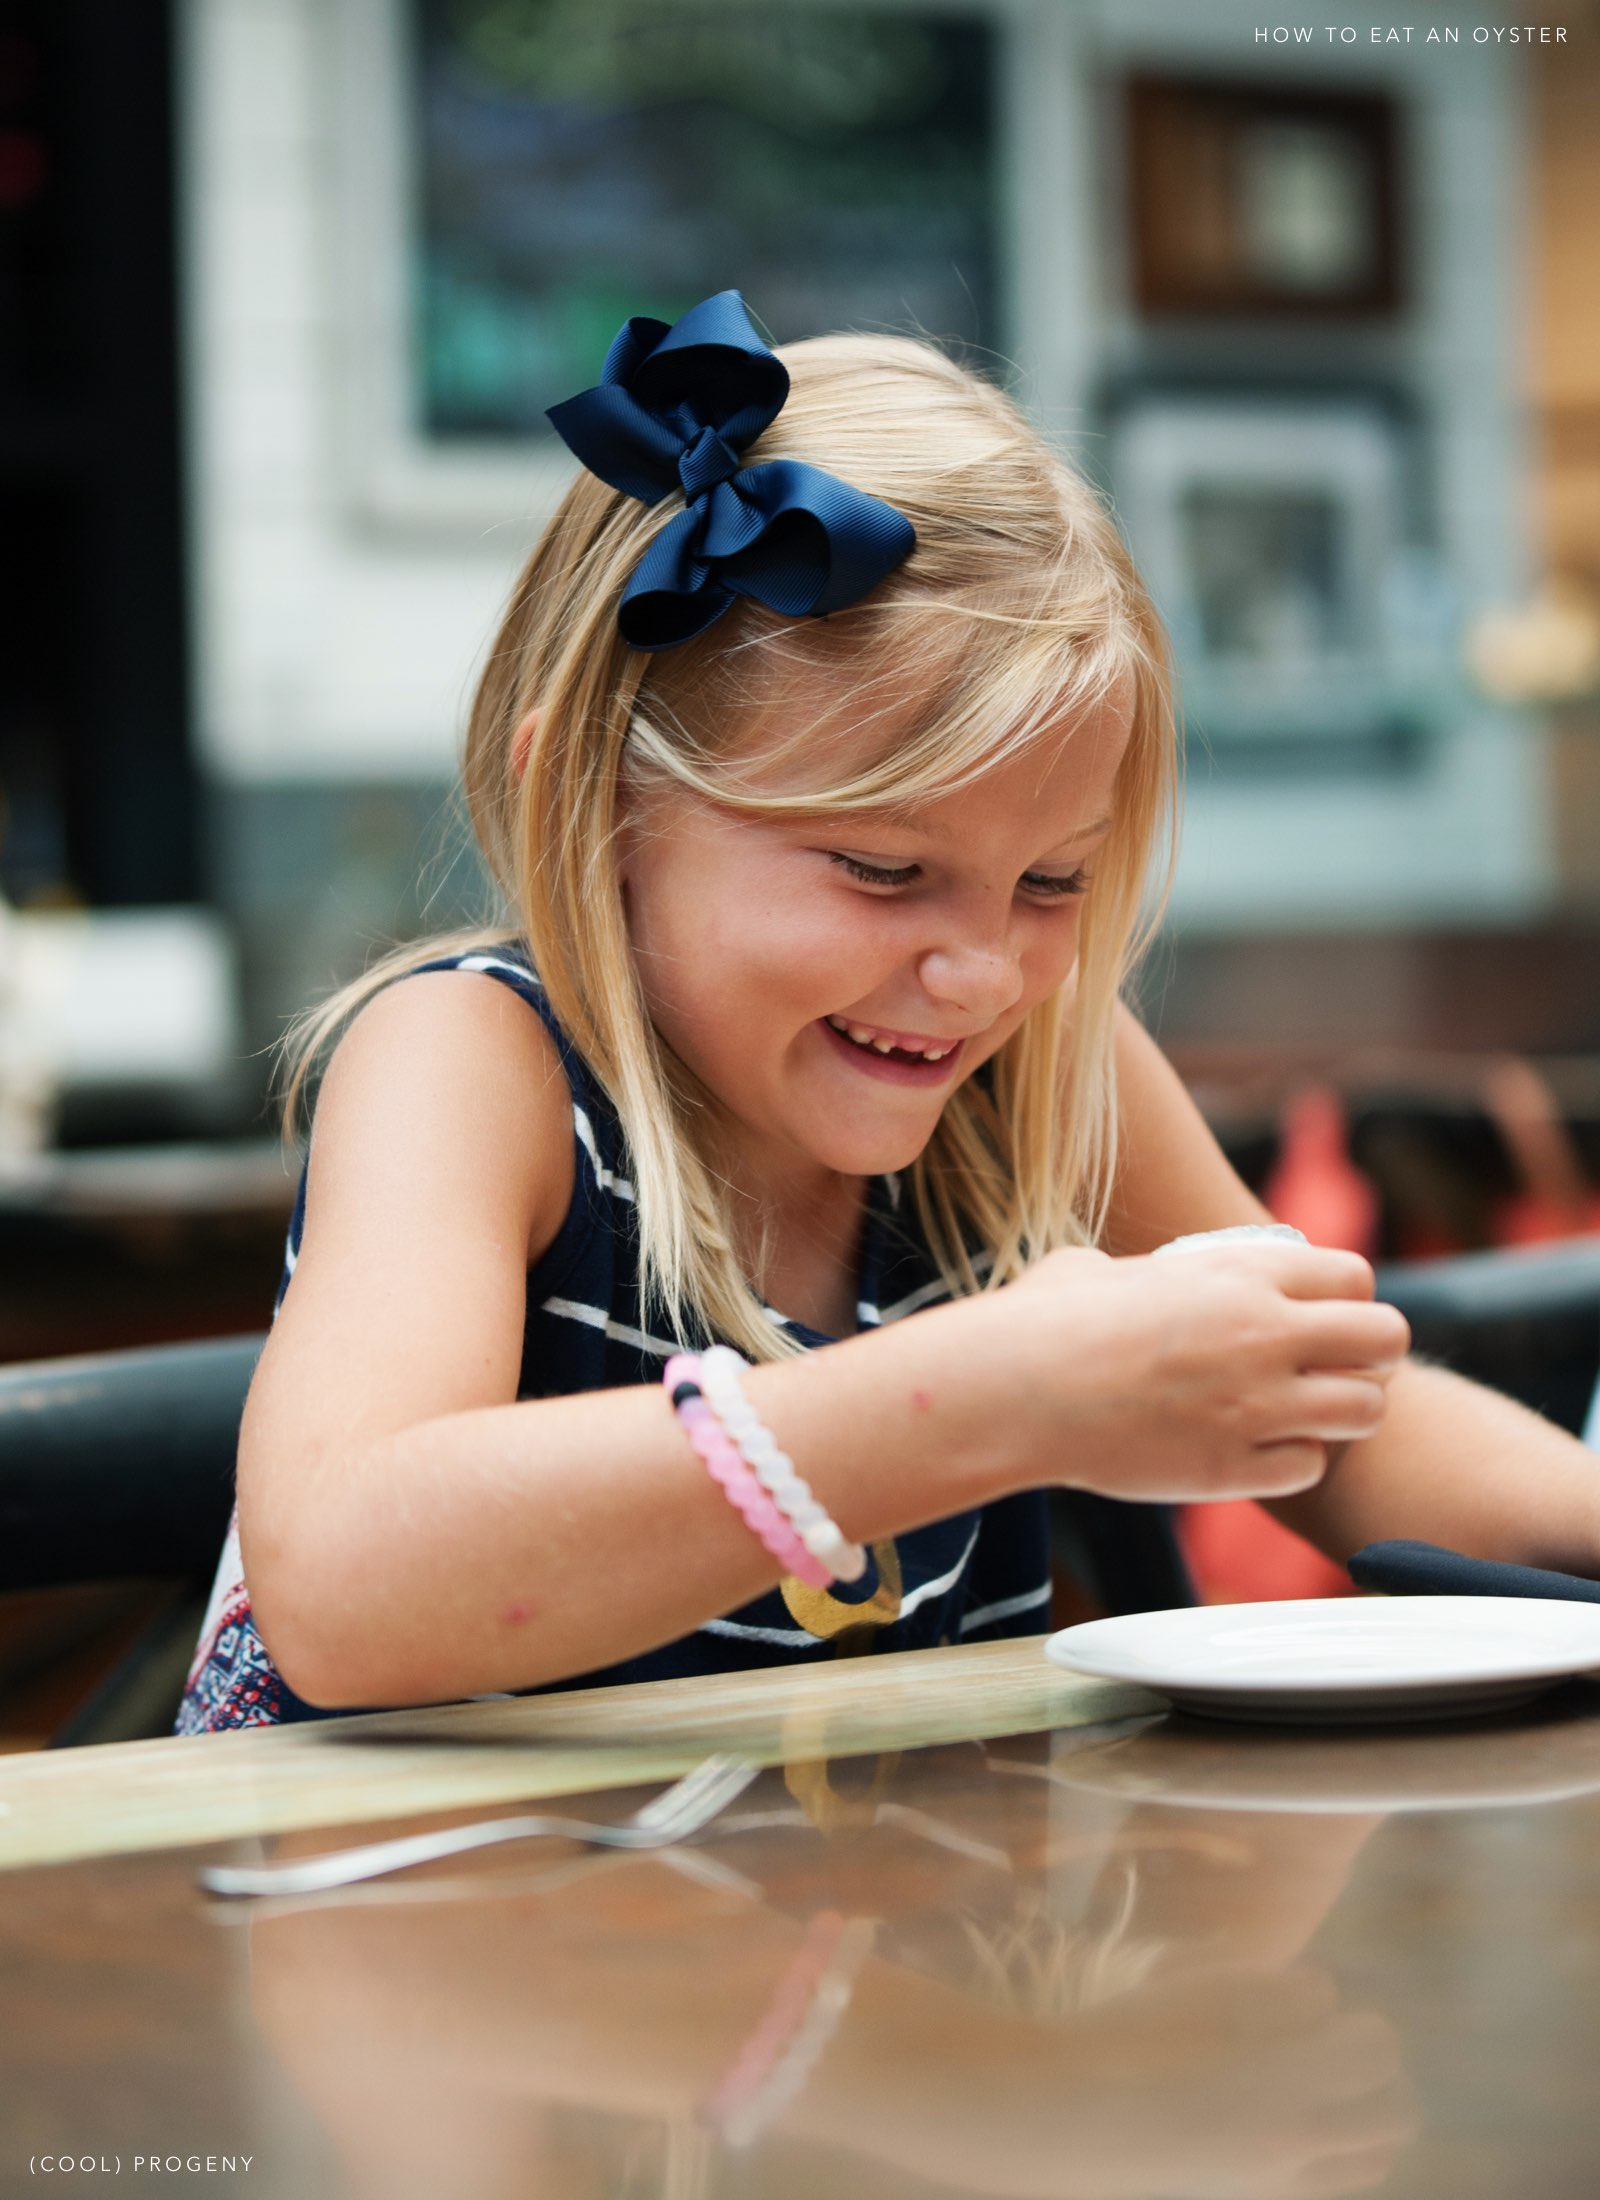 pint-sized foodies: how to eat an oyster